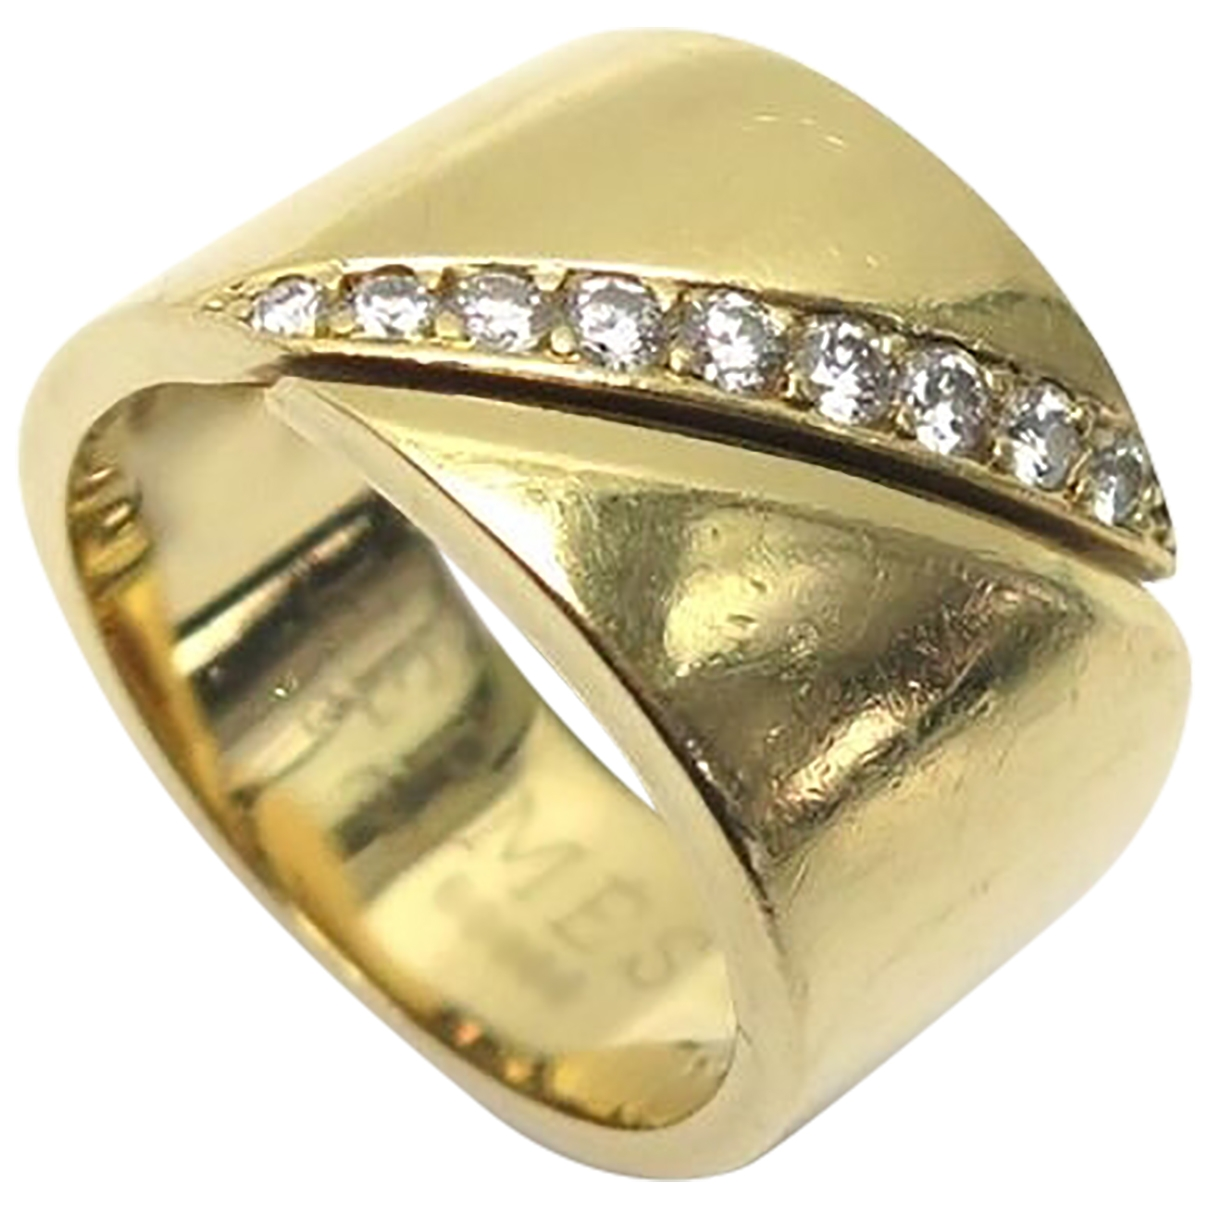 Hermes \N Ring in  Gold Gelbgold